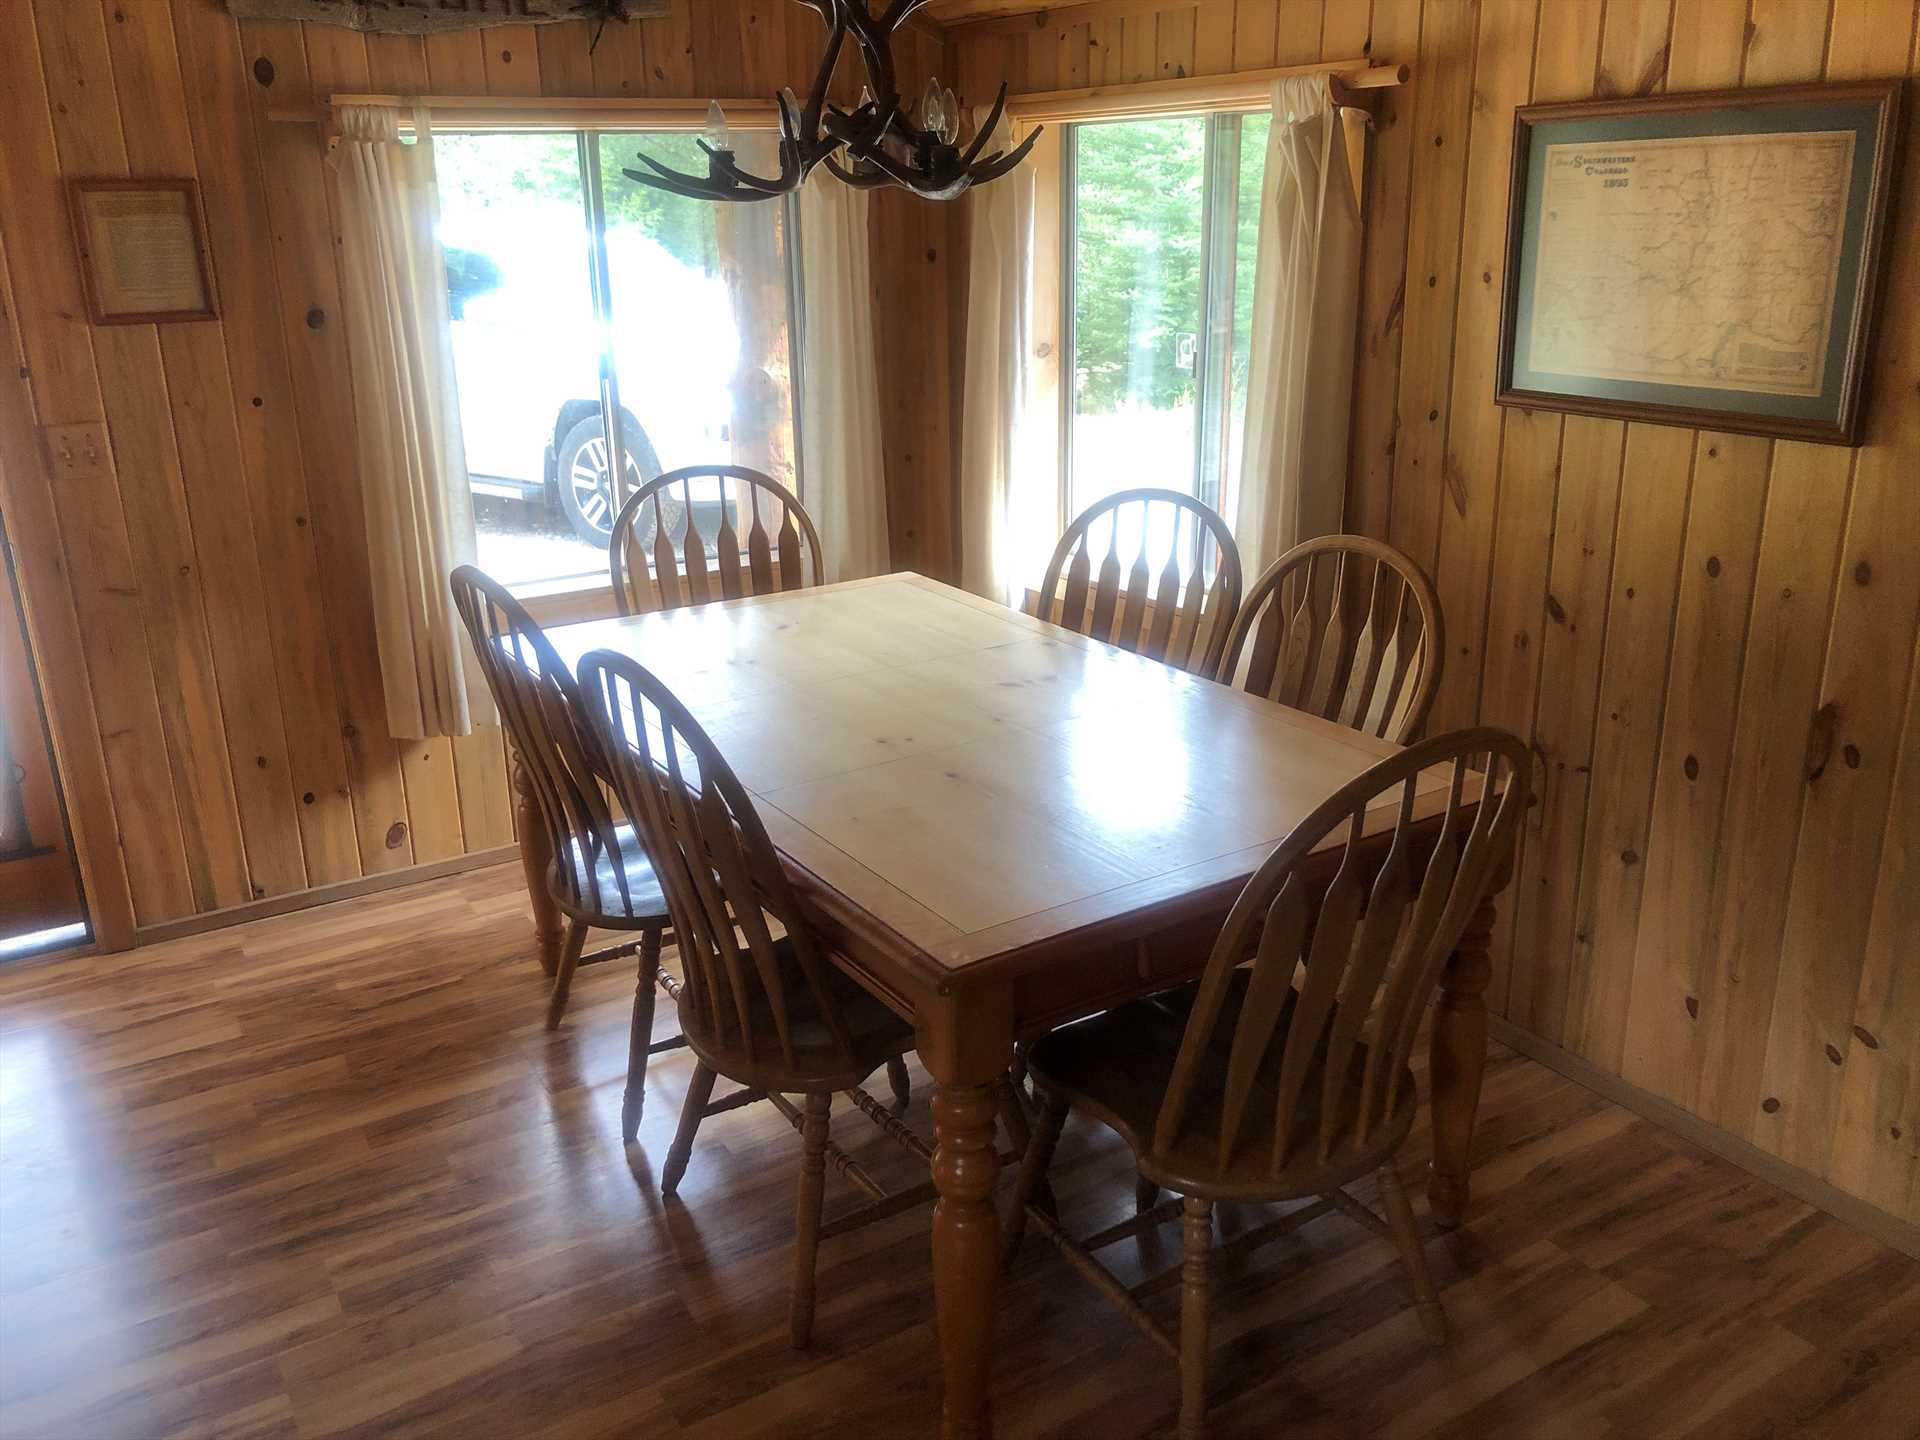 Dining Table Just Outside of Kitchen